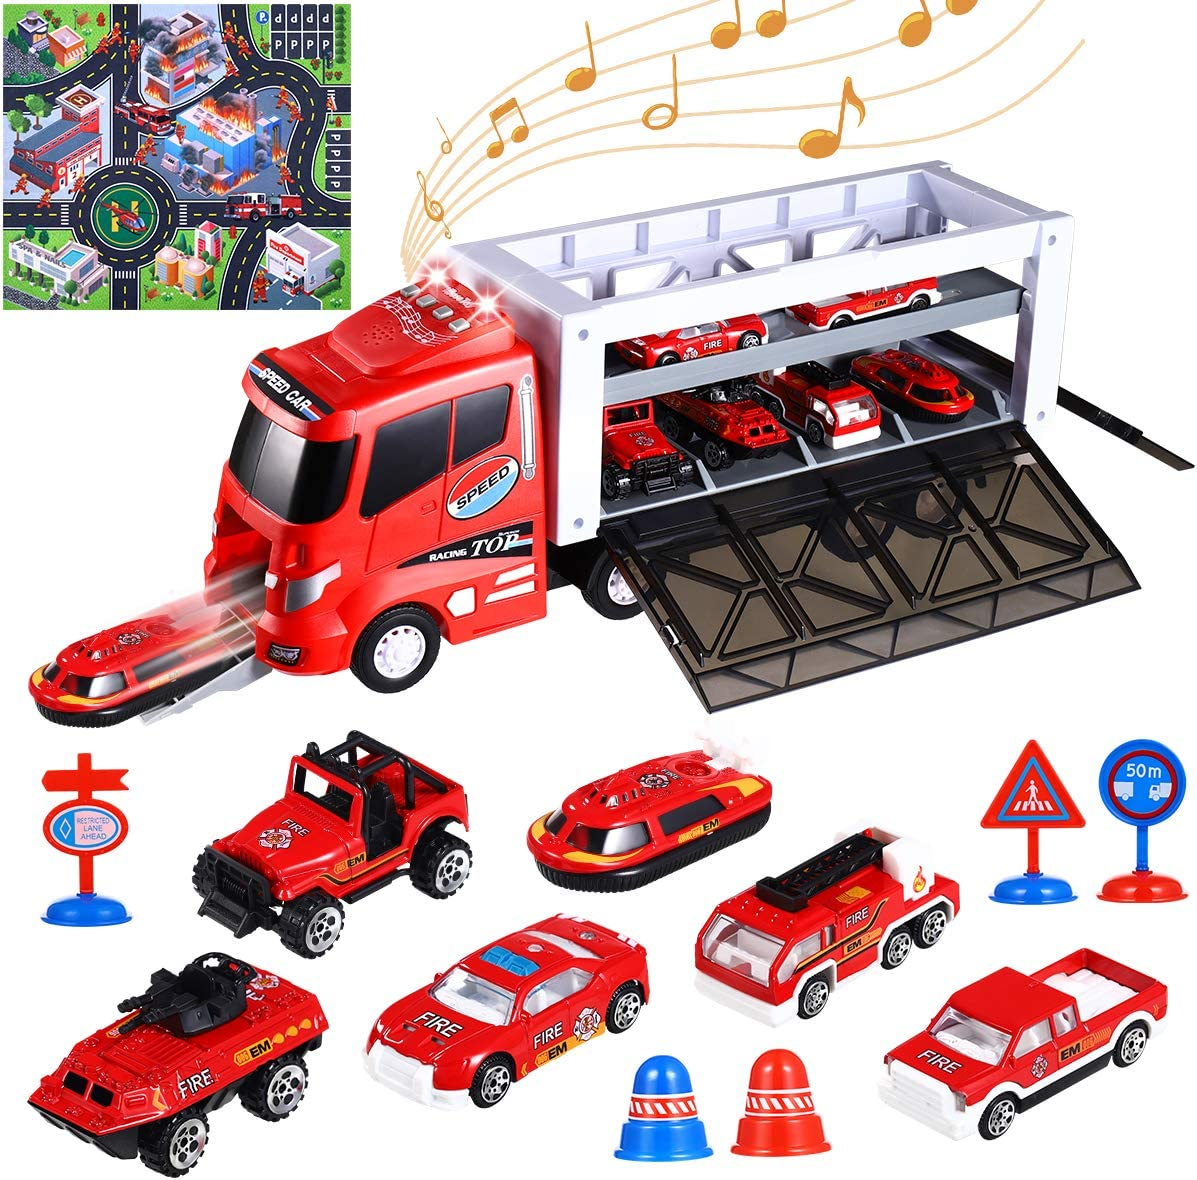 Die-cast Fire Truck Toy with Fire Engine Cars 2020 New Version 7 Years Old iBaseToy Transport Car Carrier Truck Toy with Lights and Sounds 6 Roadblocks /& Play Mat for Kids Toddlers Boys 3 5 4